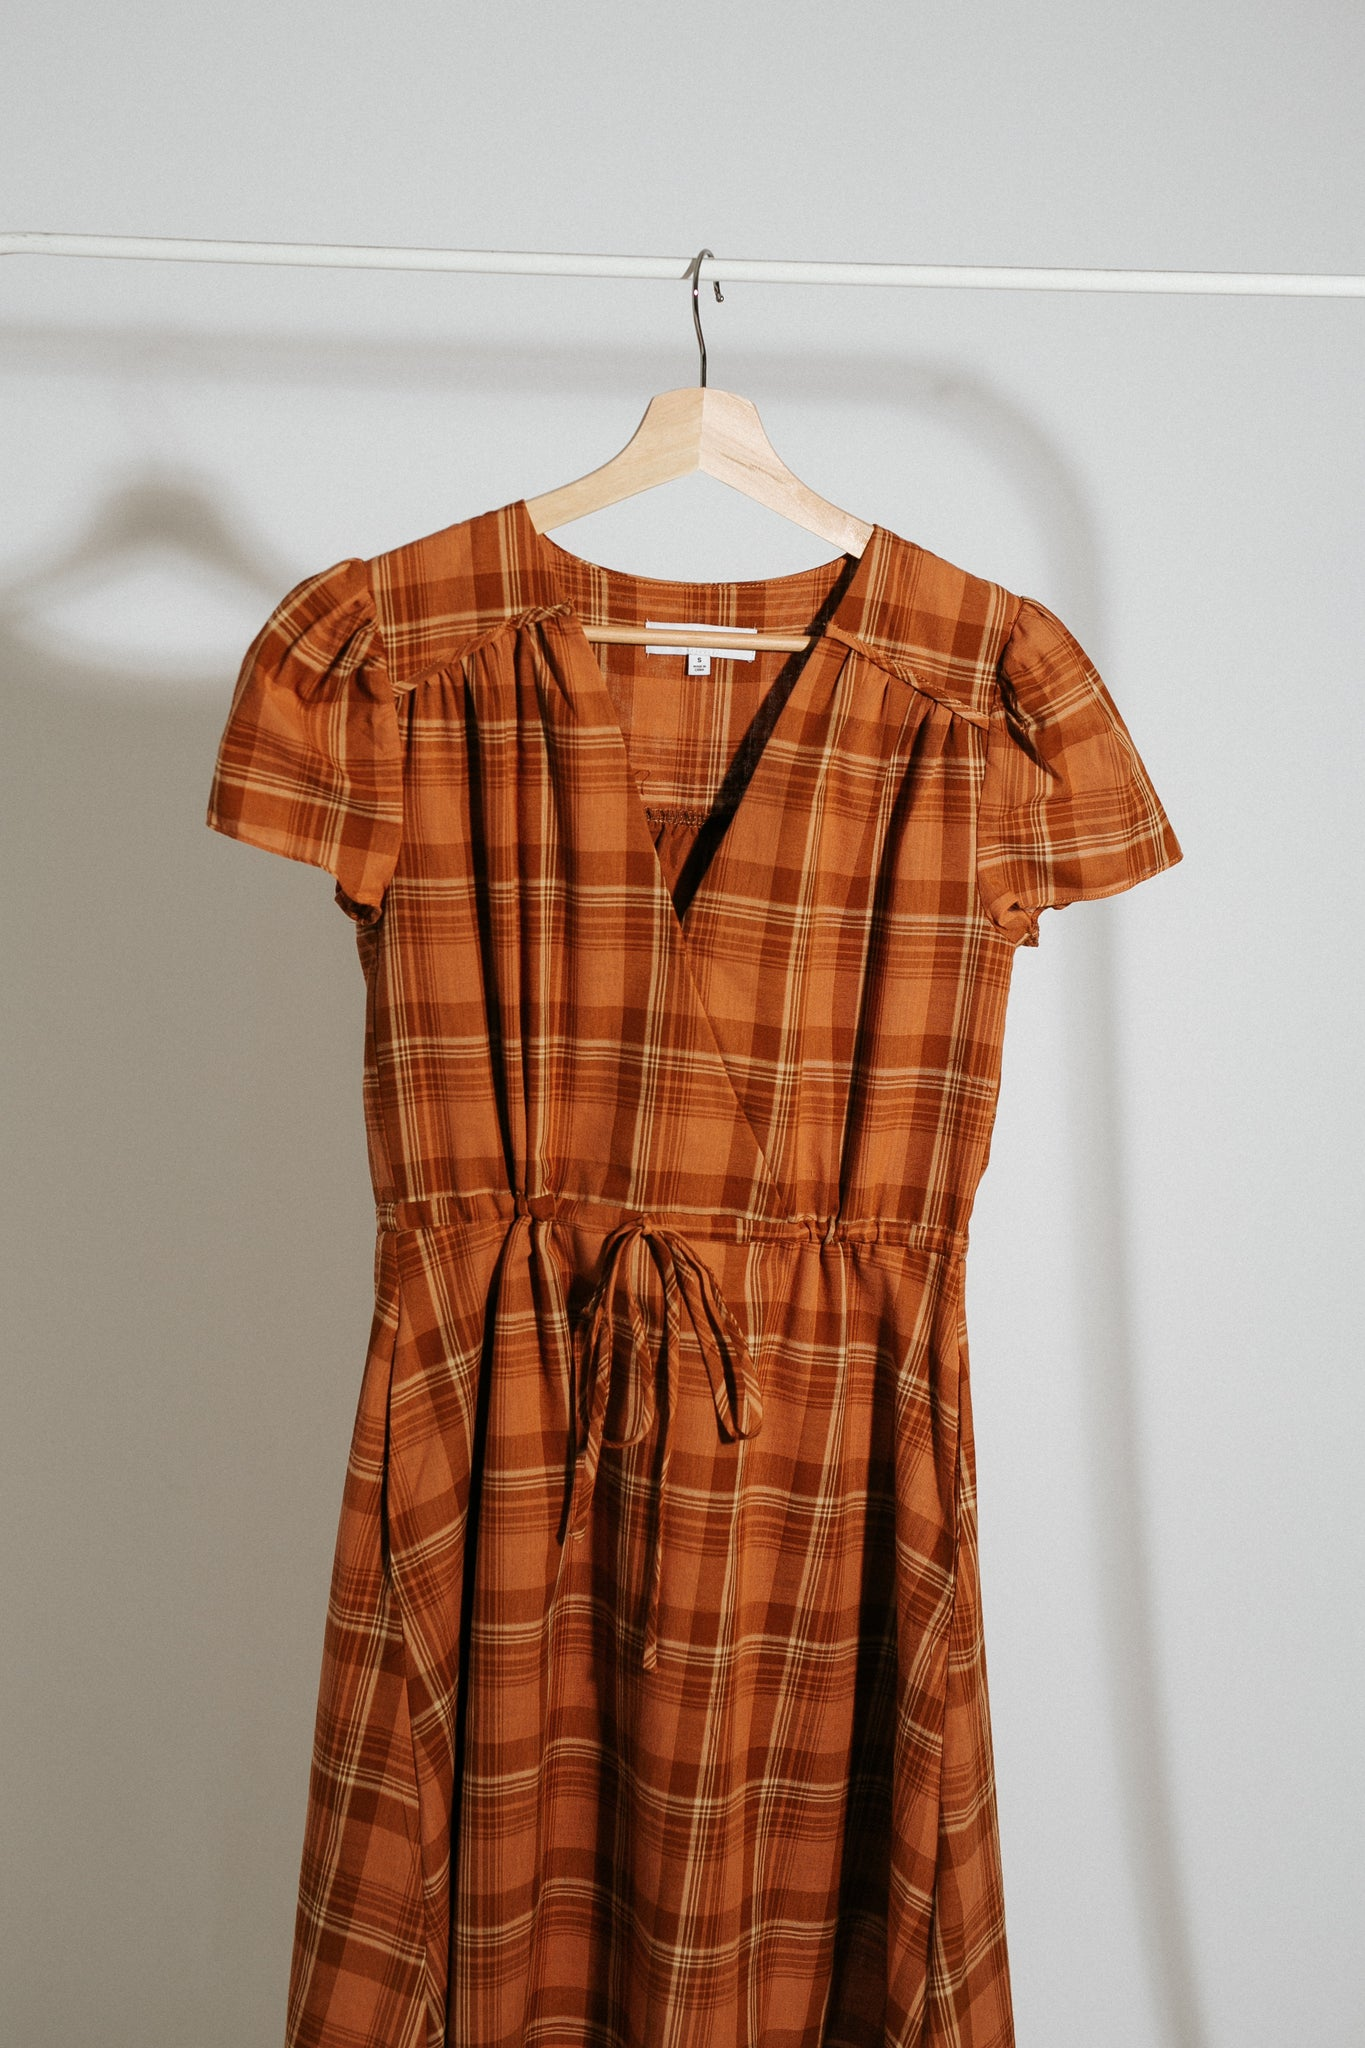 The Terracotta Workshop Dress